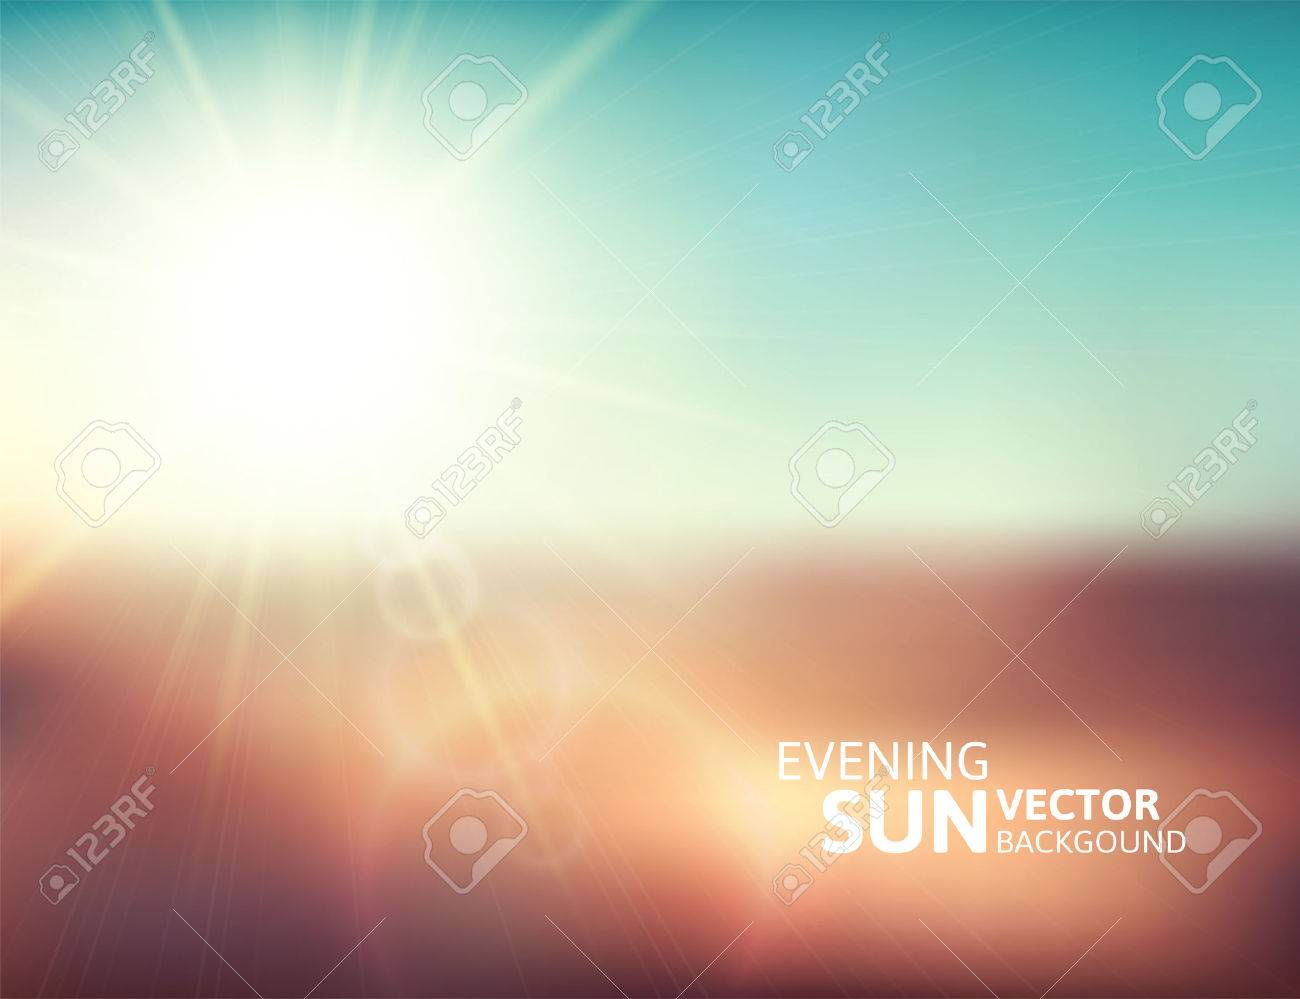 Blurry evening scene with brown field, sun burst, blue and green blur sky, vector illustration - 27200483